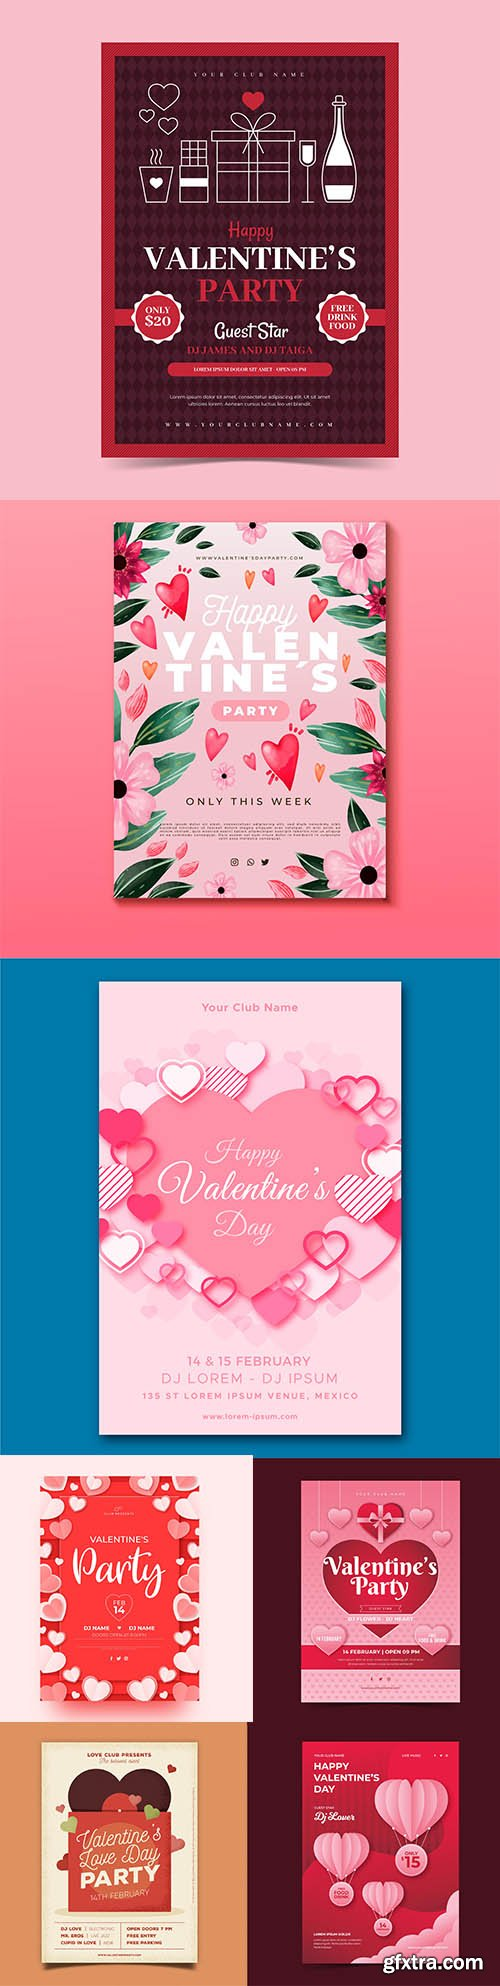 Happy Valentines day vector collection vol 6